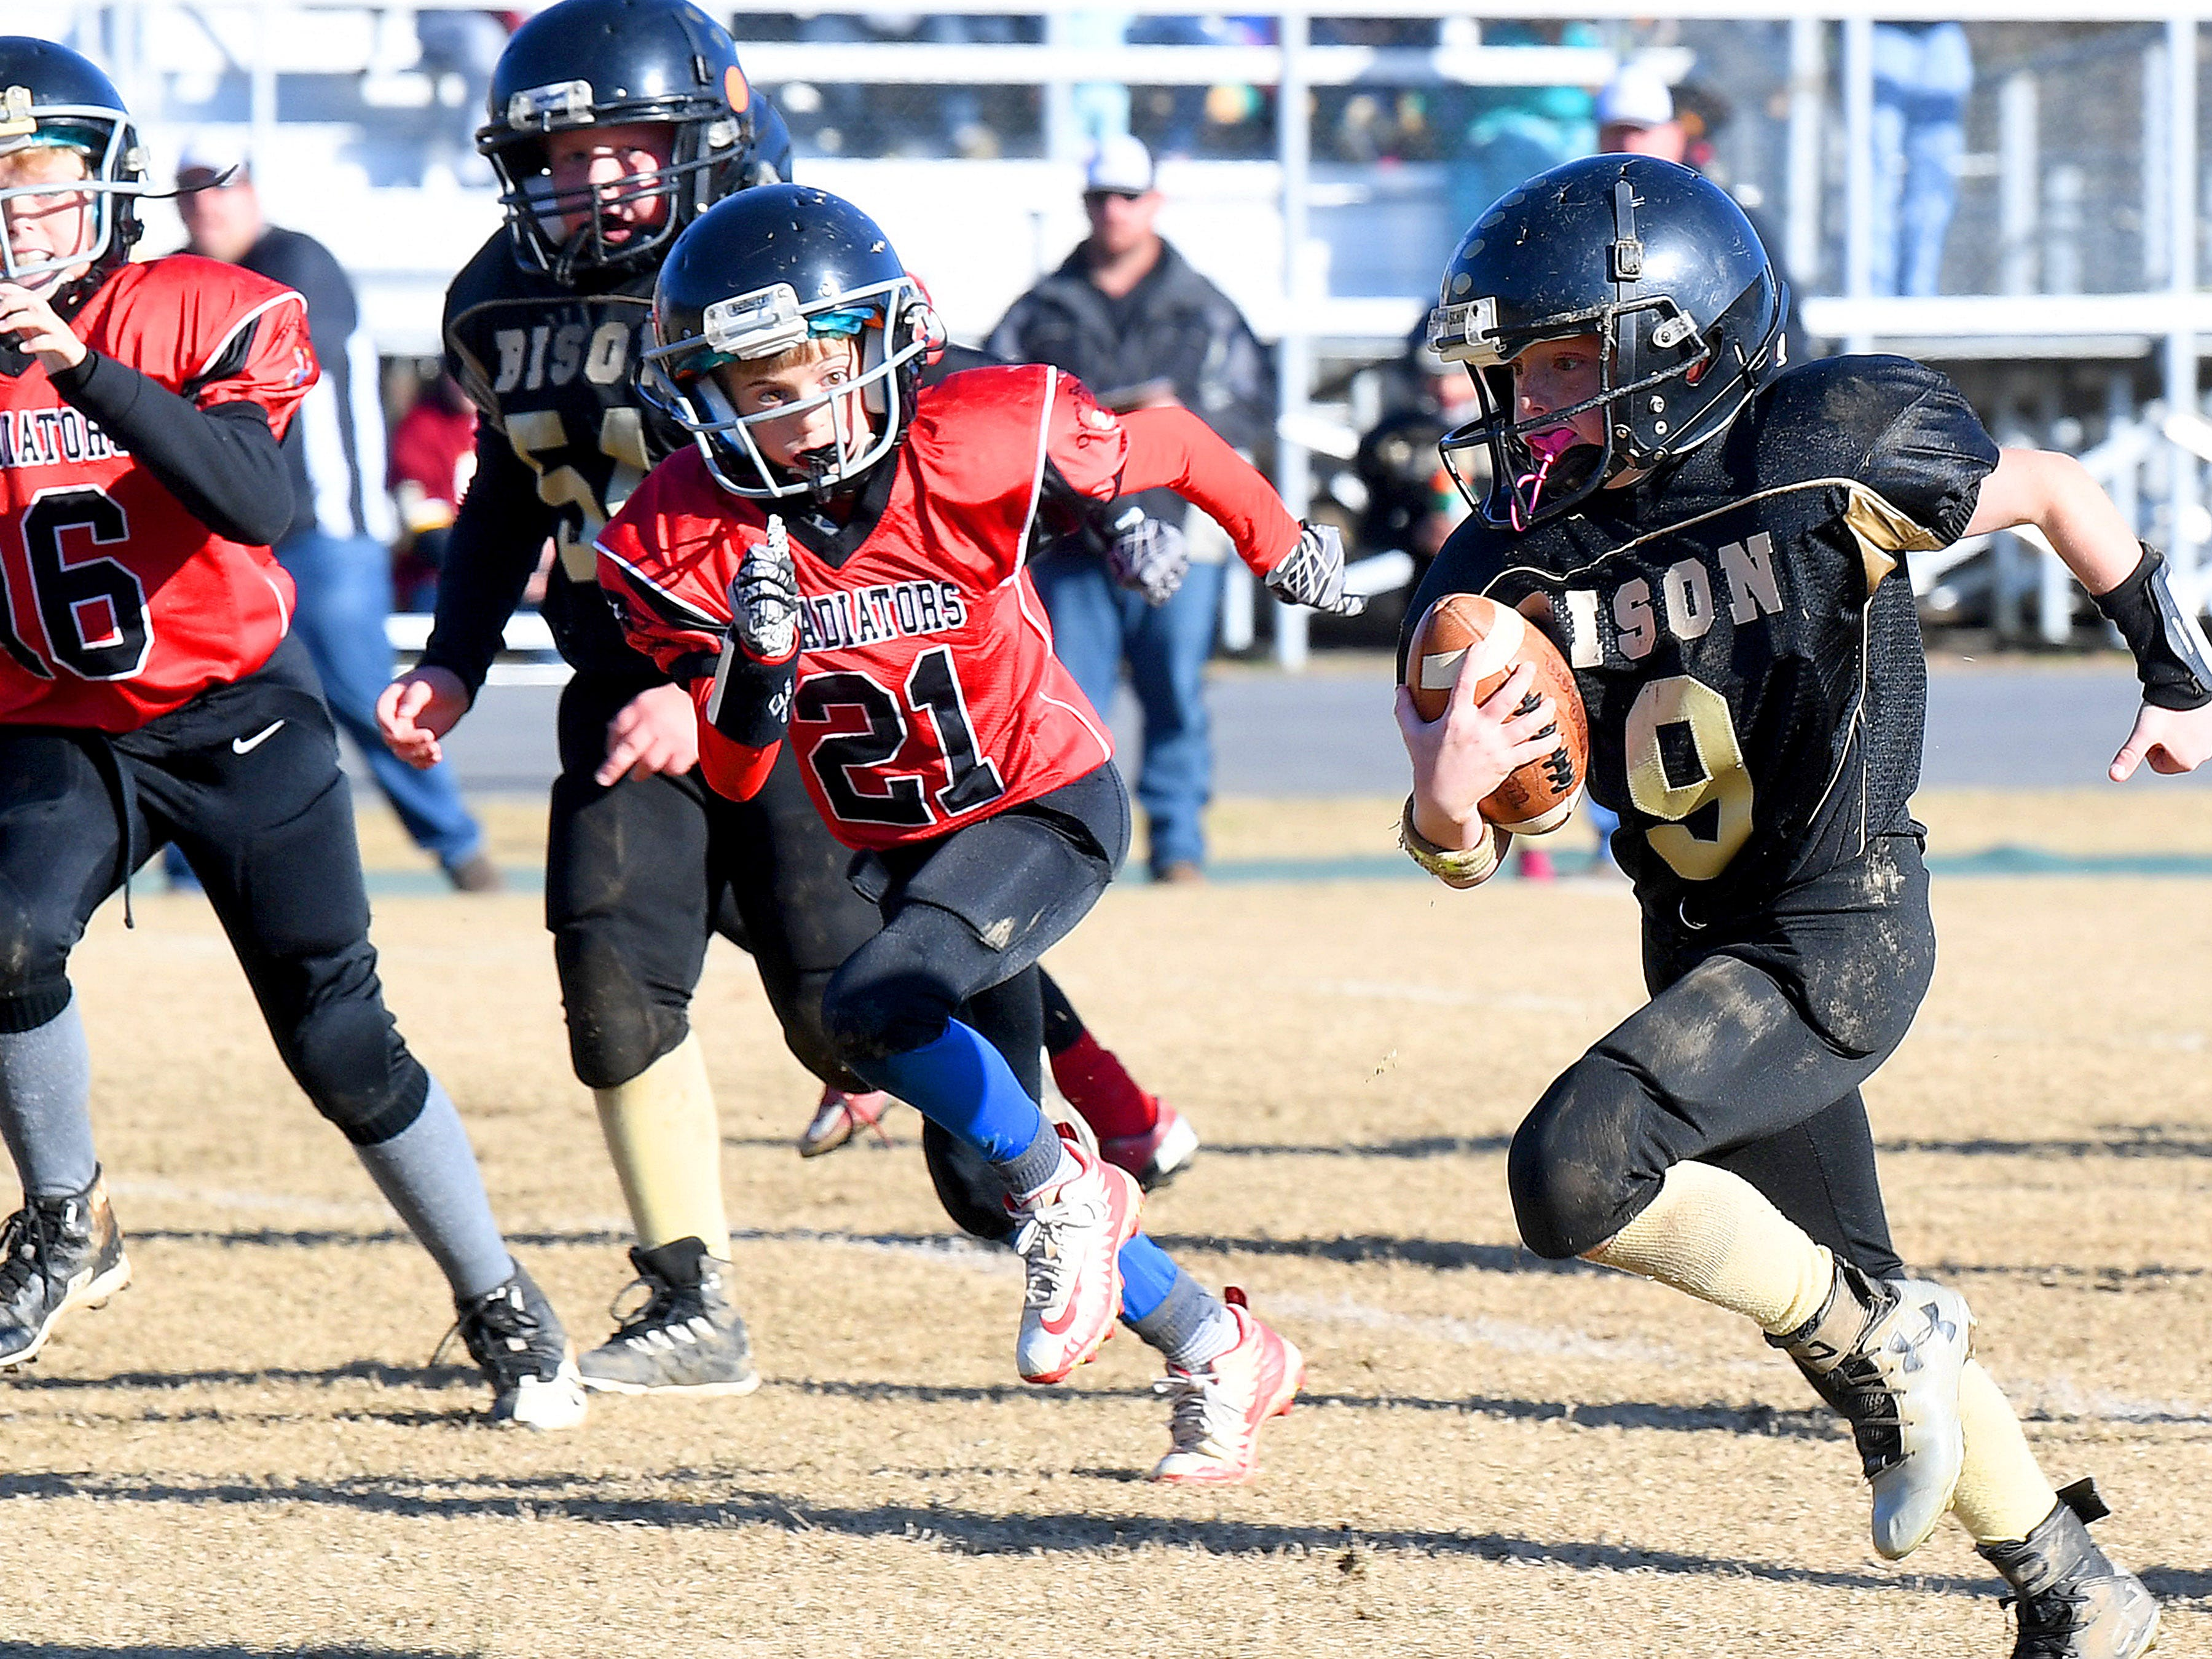 Riverheads' Bryson Cash closes in on Buffalo Gap ball carrier Brandon Argenbright during the Augusta County Quarterback Club Midget Super Bowl in Fishersville on Sunday, Nov. 11, 2018. Riverheads beat Buffalo Gap, 25-6.